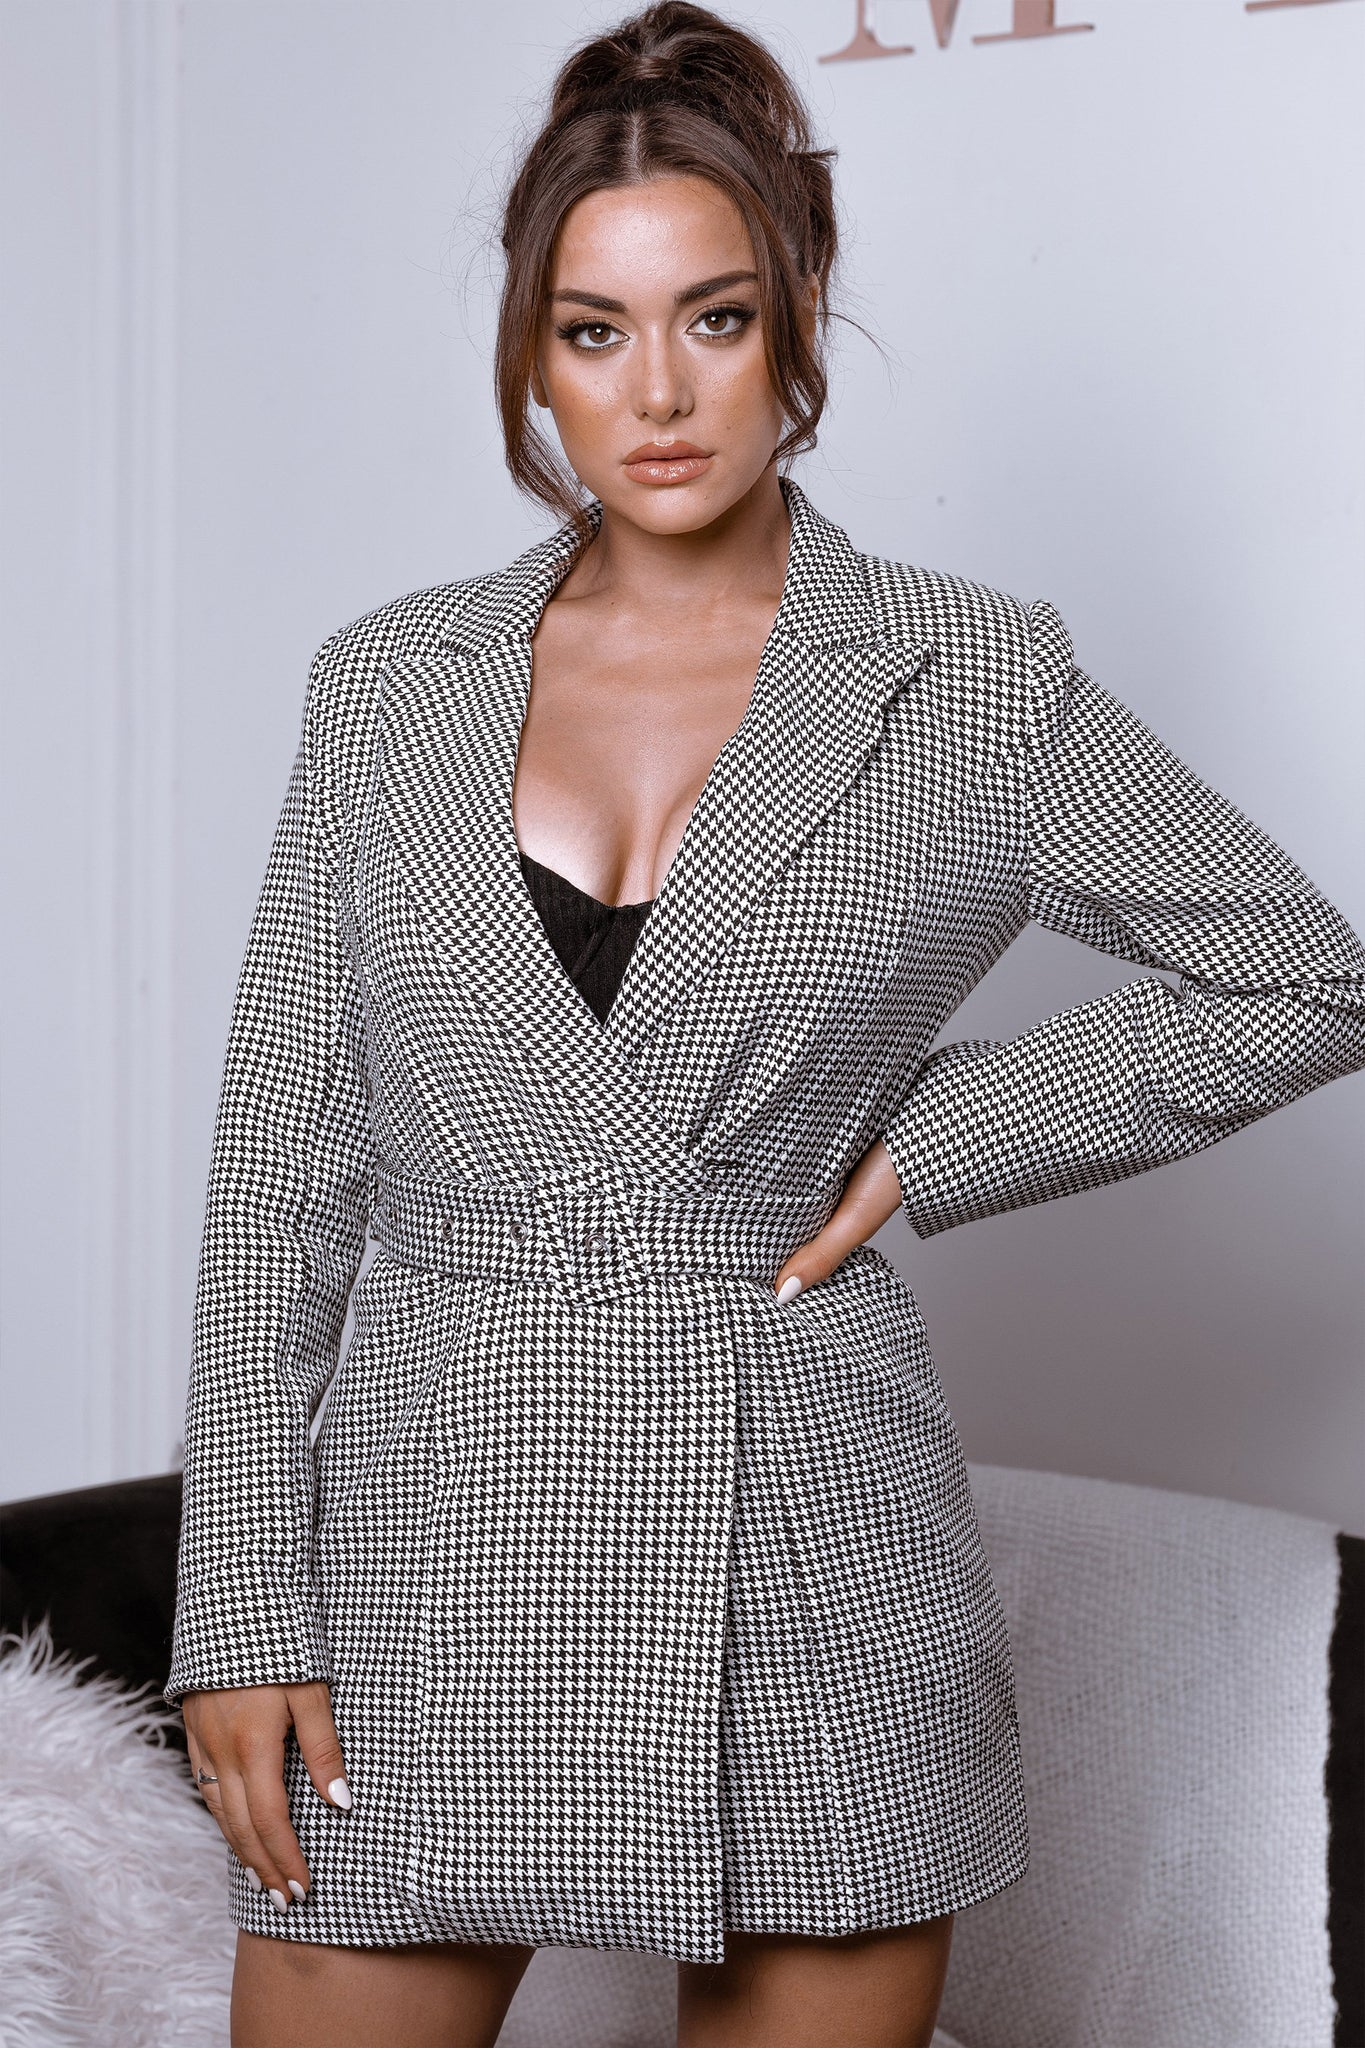 Victoria Double Breasted Blazer Dress - Houndstooth - MESHKI